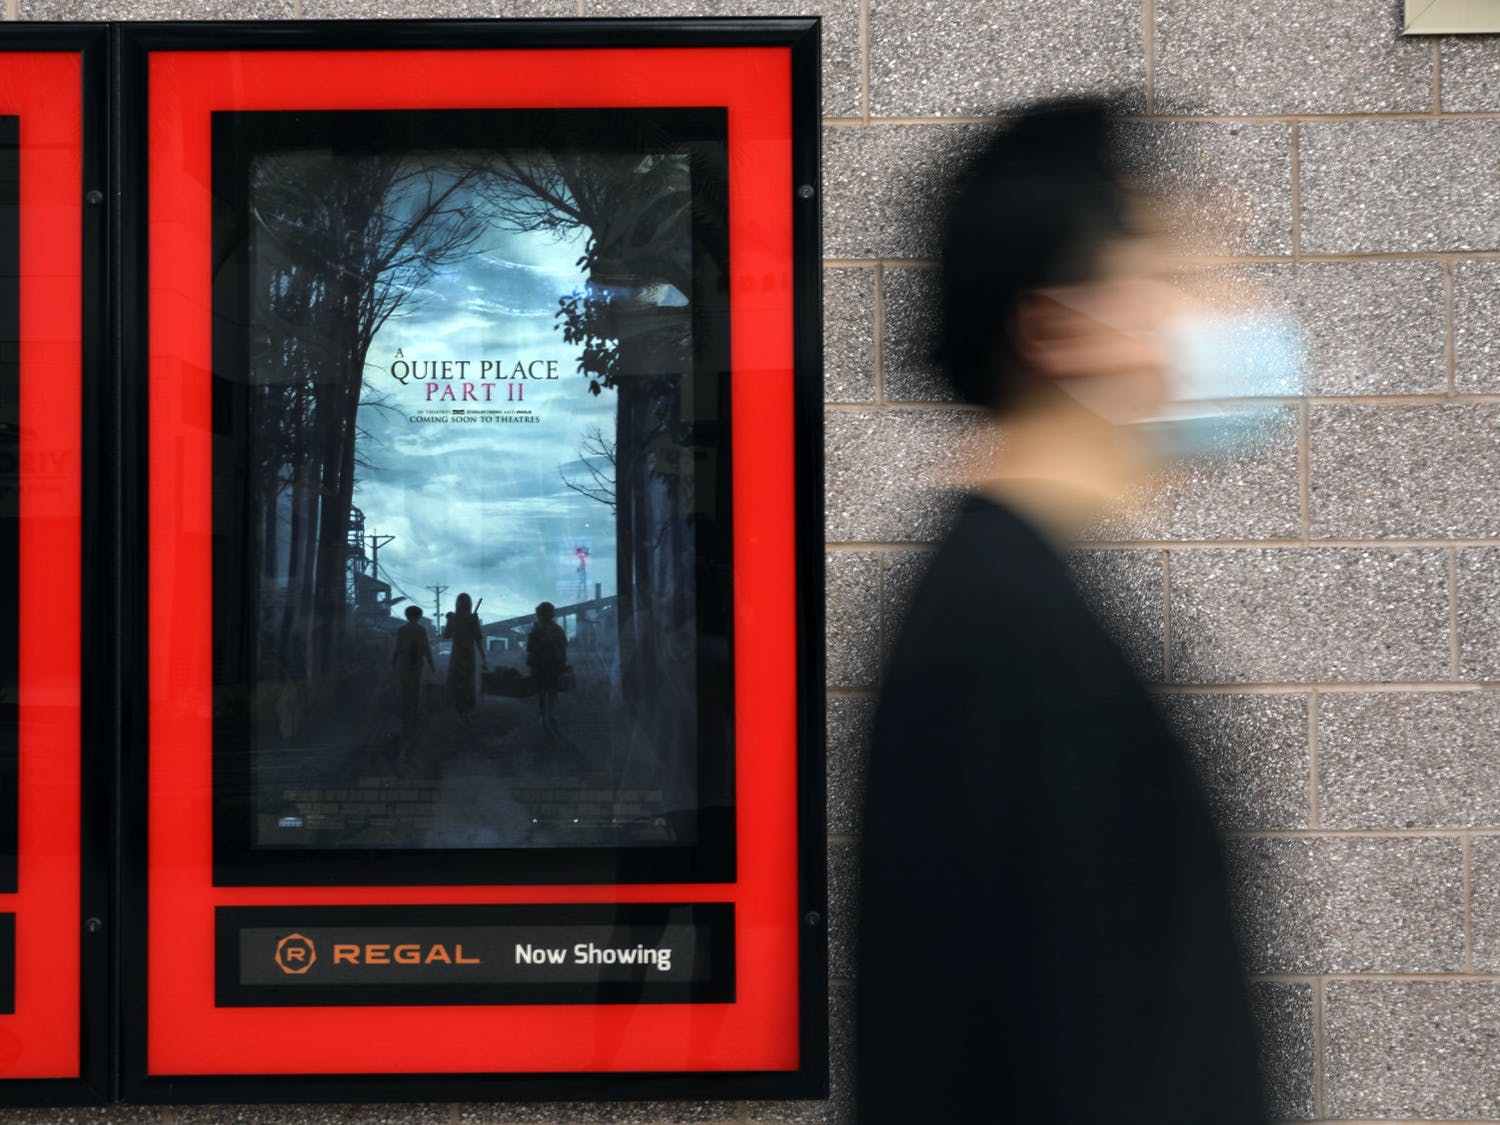 """Haoxian Li, 24, an Orlando resident, walks past a movie poster for """"A Quiet Place Part II"""" at Regal Celebration Pointe theater in Gainesville on Thursday, June 3, 2021."""